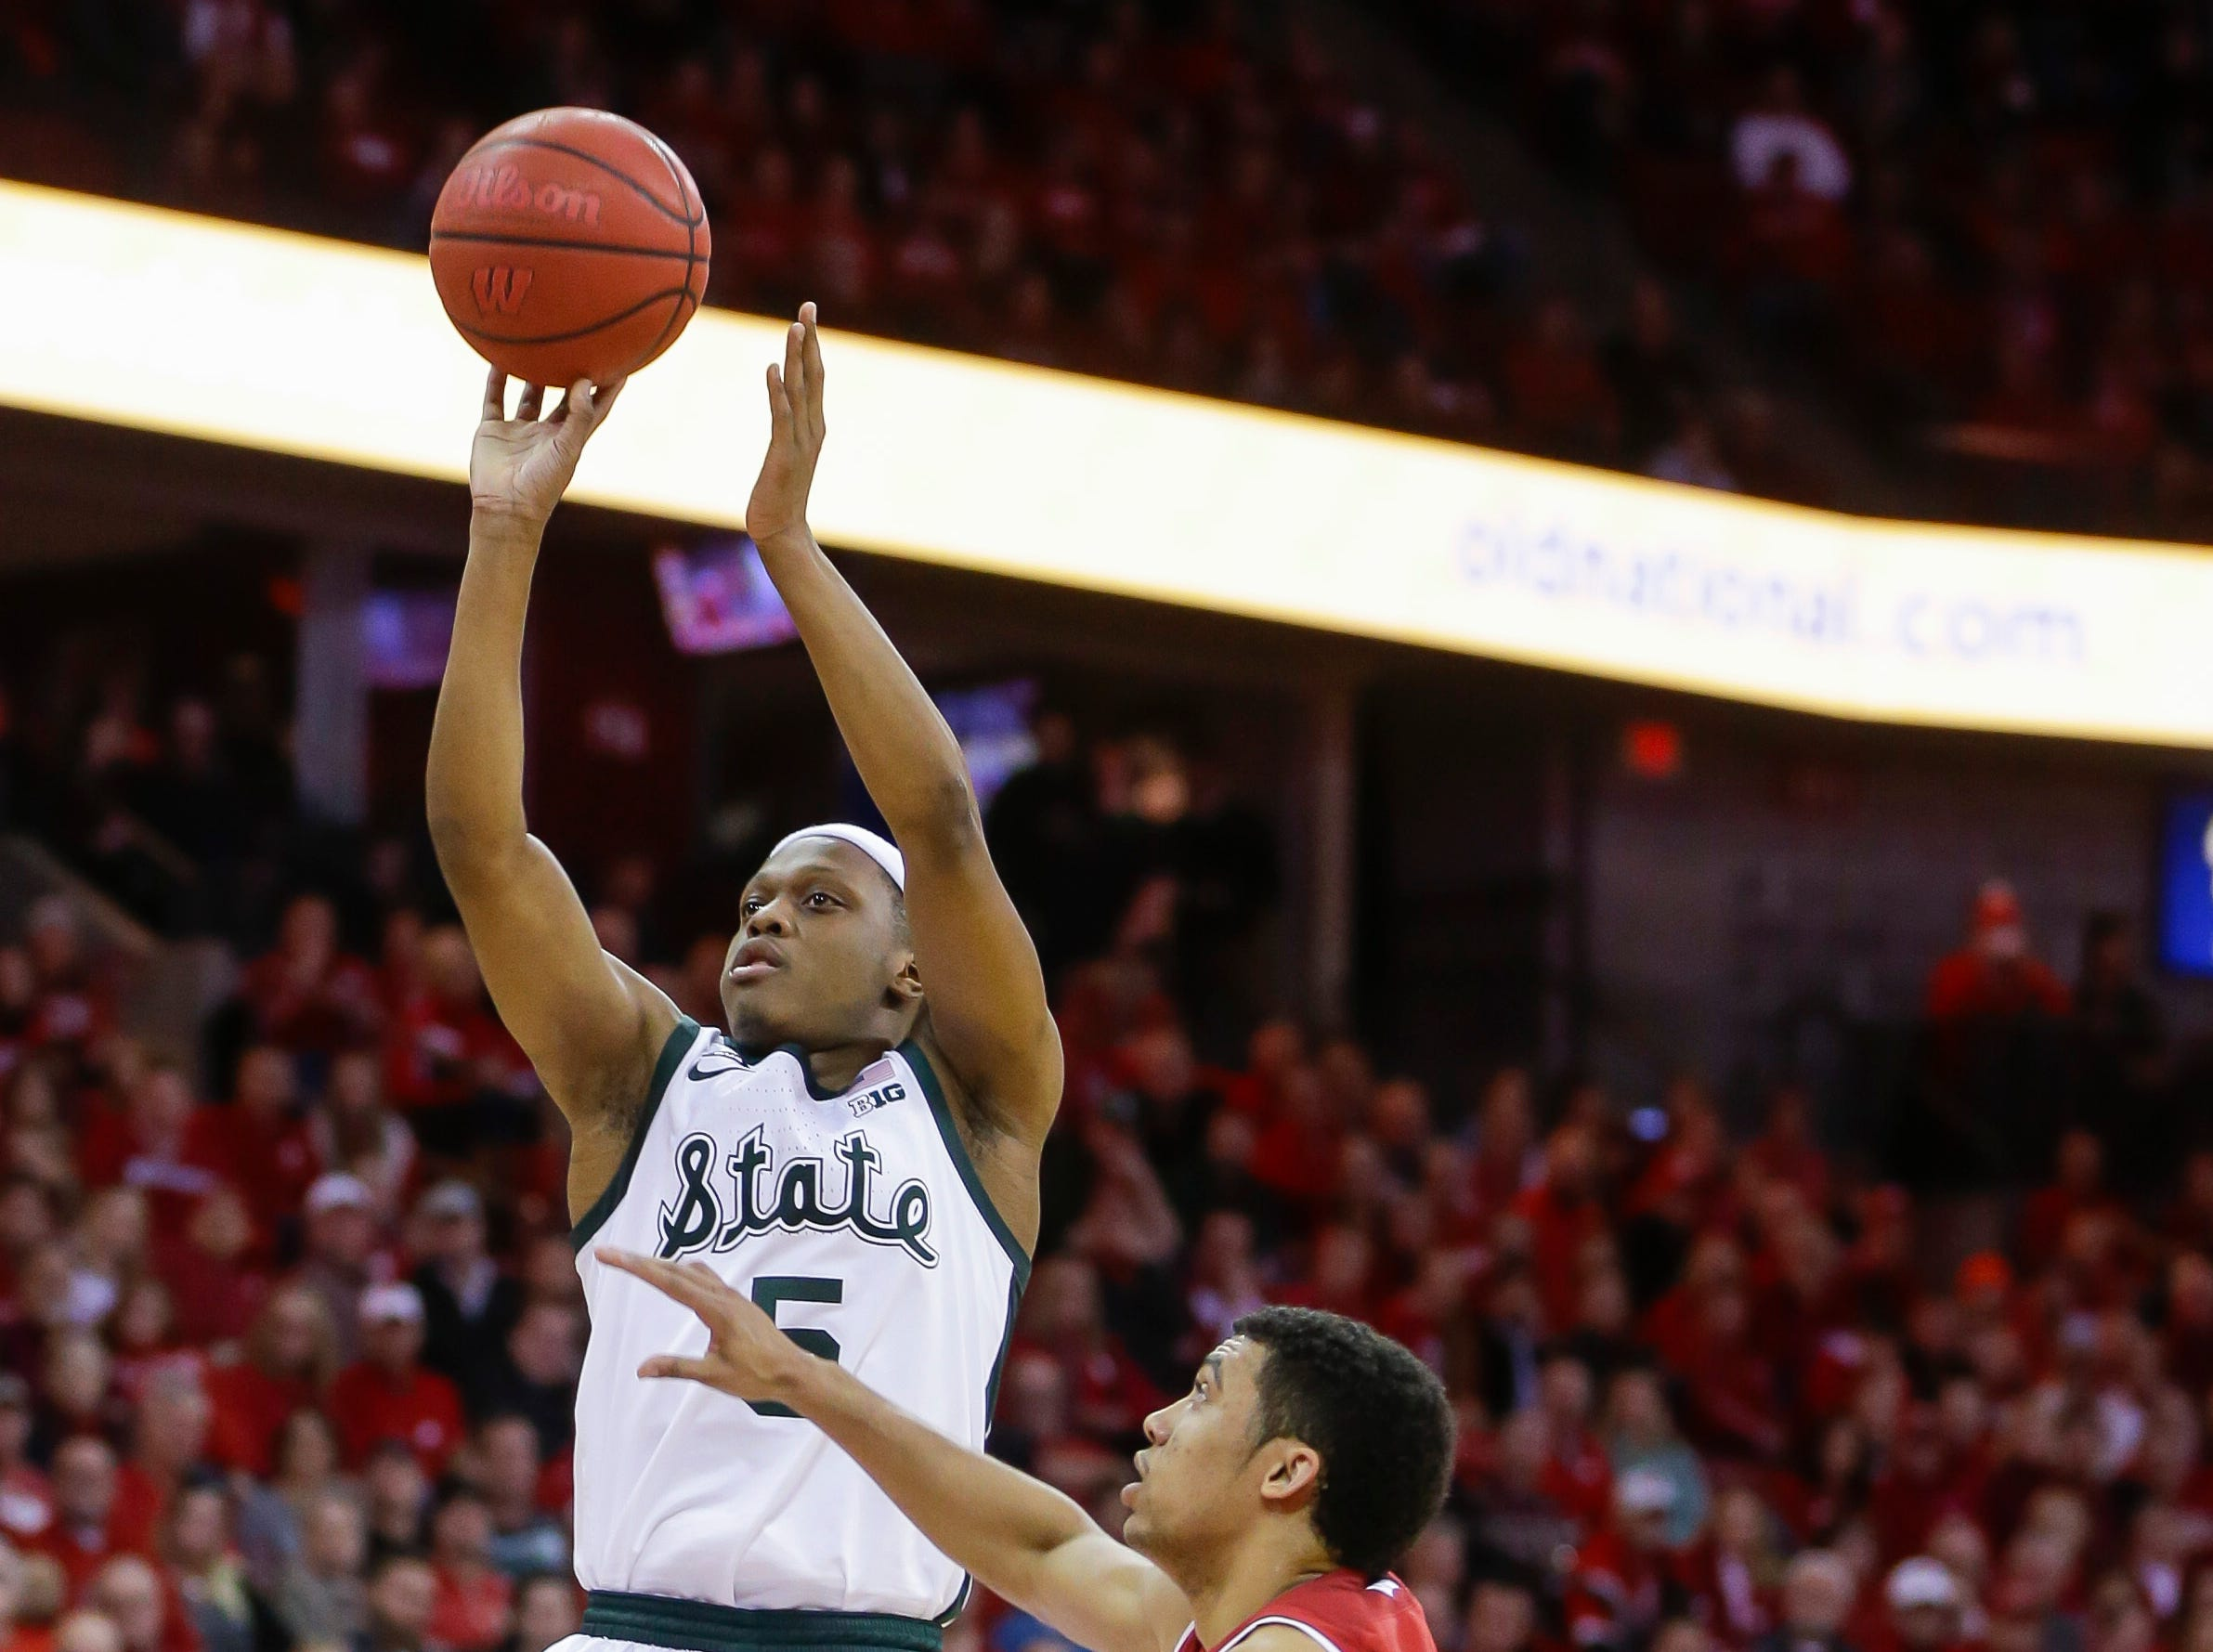 Michigan States's Cassius Winston (5) shoots next to Wisconsin's D'Mitrik Trice (0) during the first half of an NCAA college basketball game Tuesday, Feb. 12, 2019, in Madison, Wis. Michigan State won 67-59.